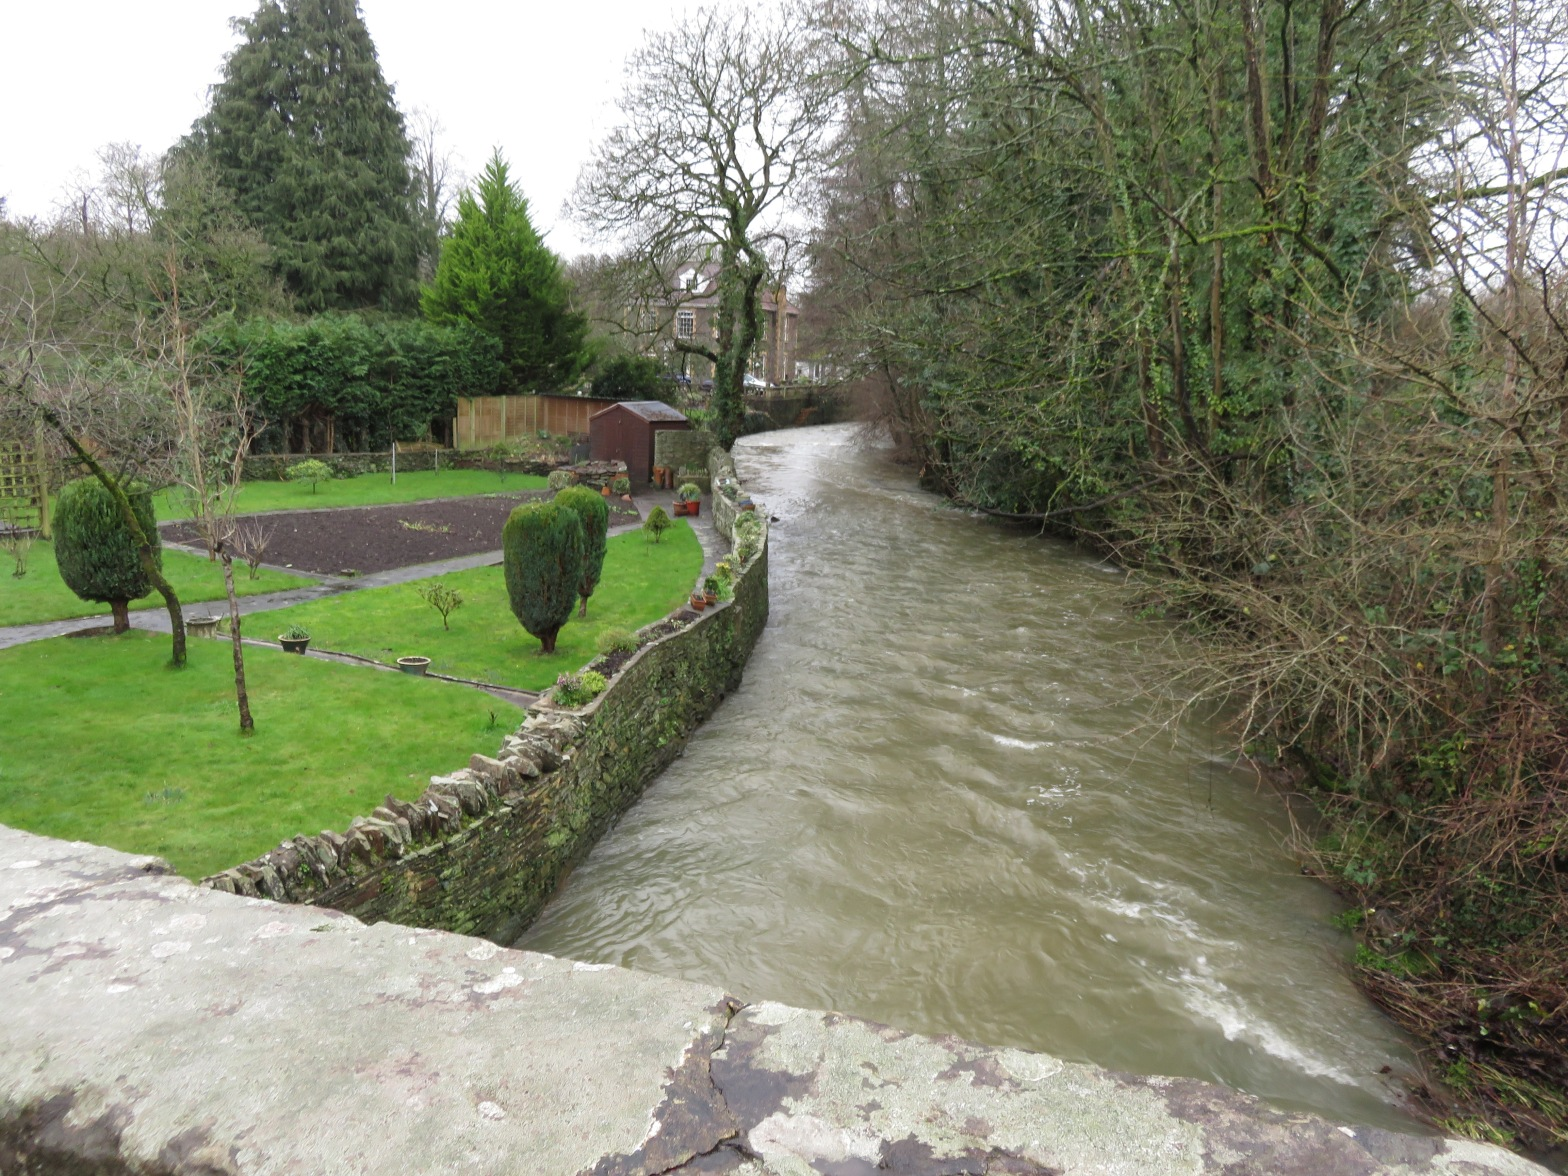 The River Frome at Hambrook